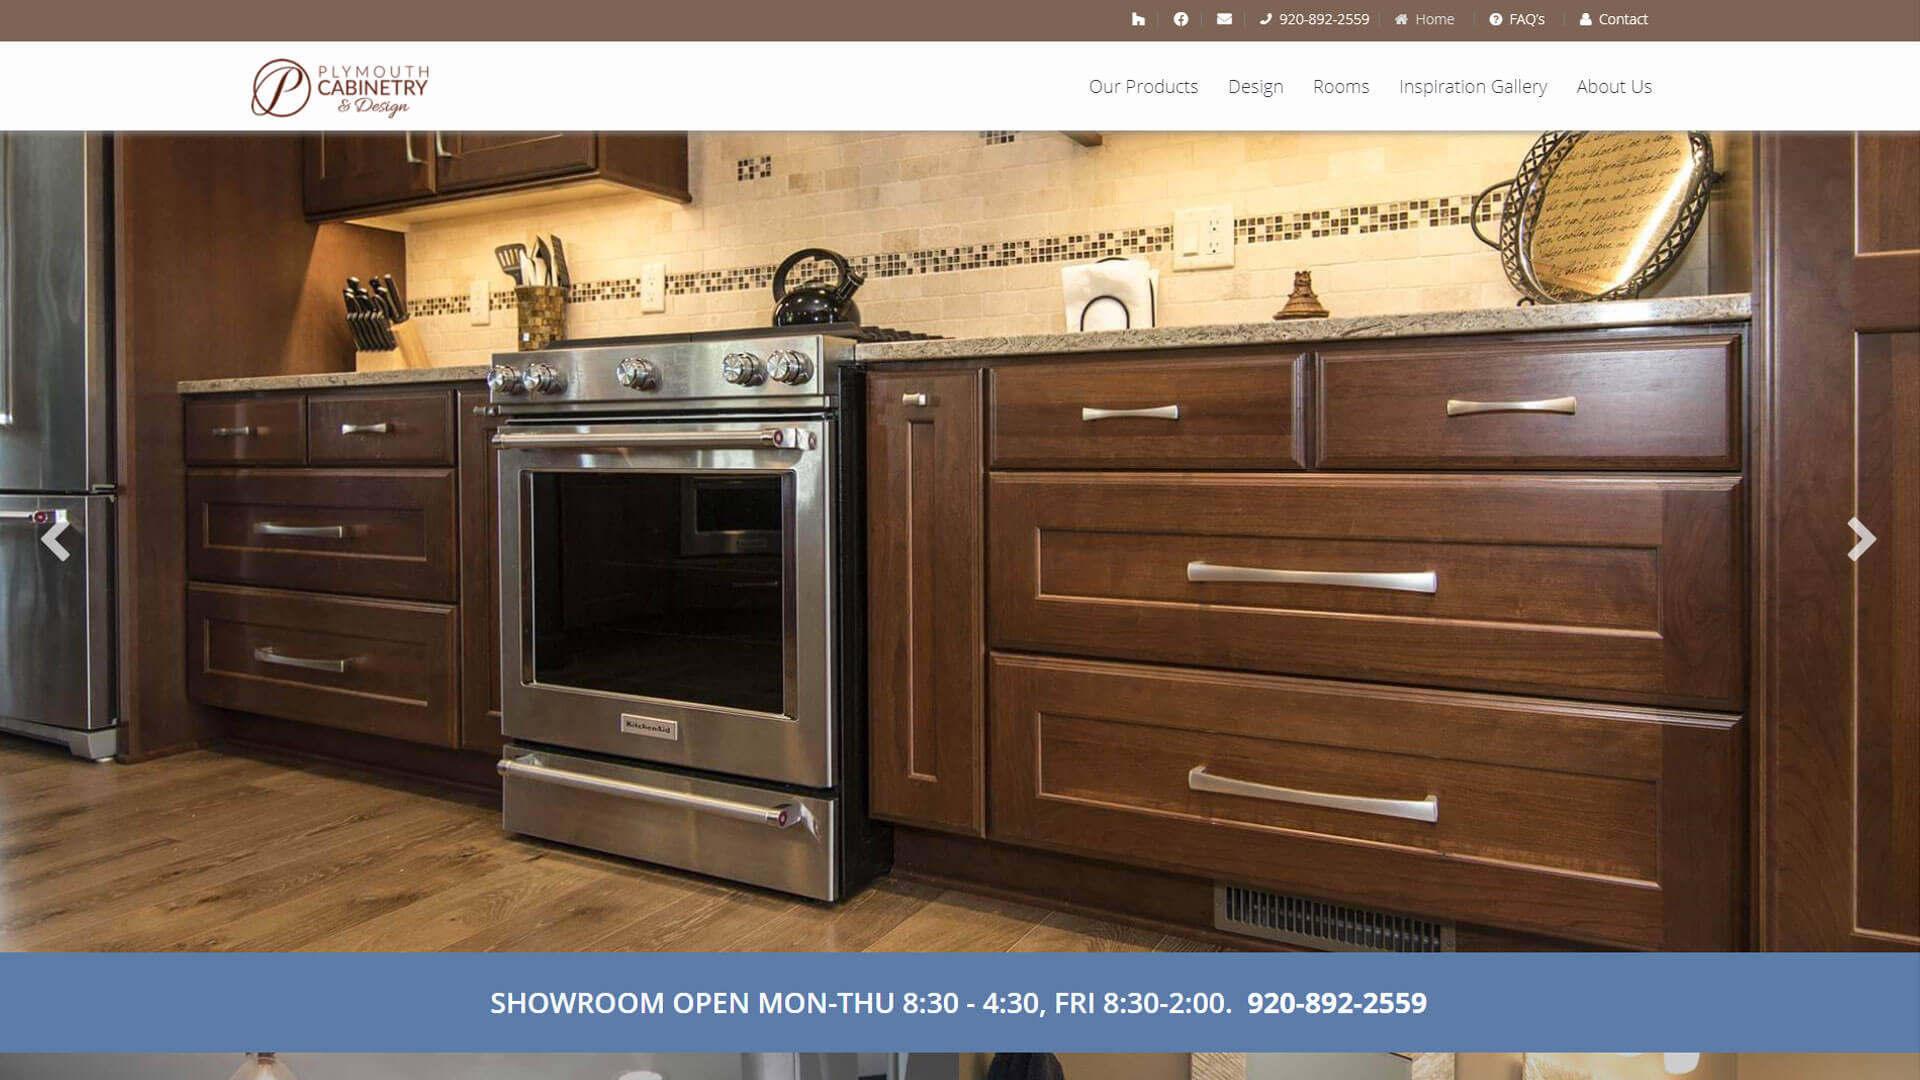 plymouth-cabinetry